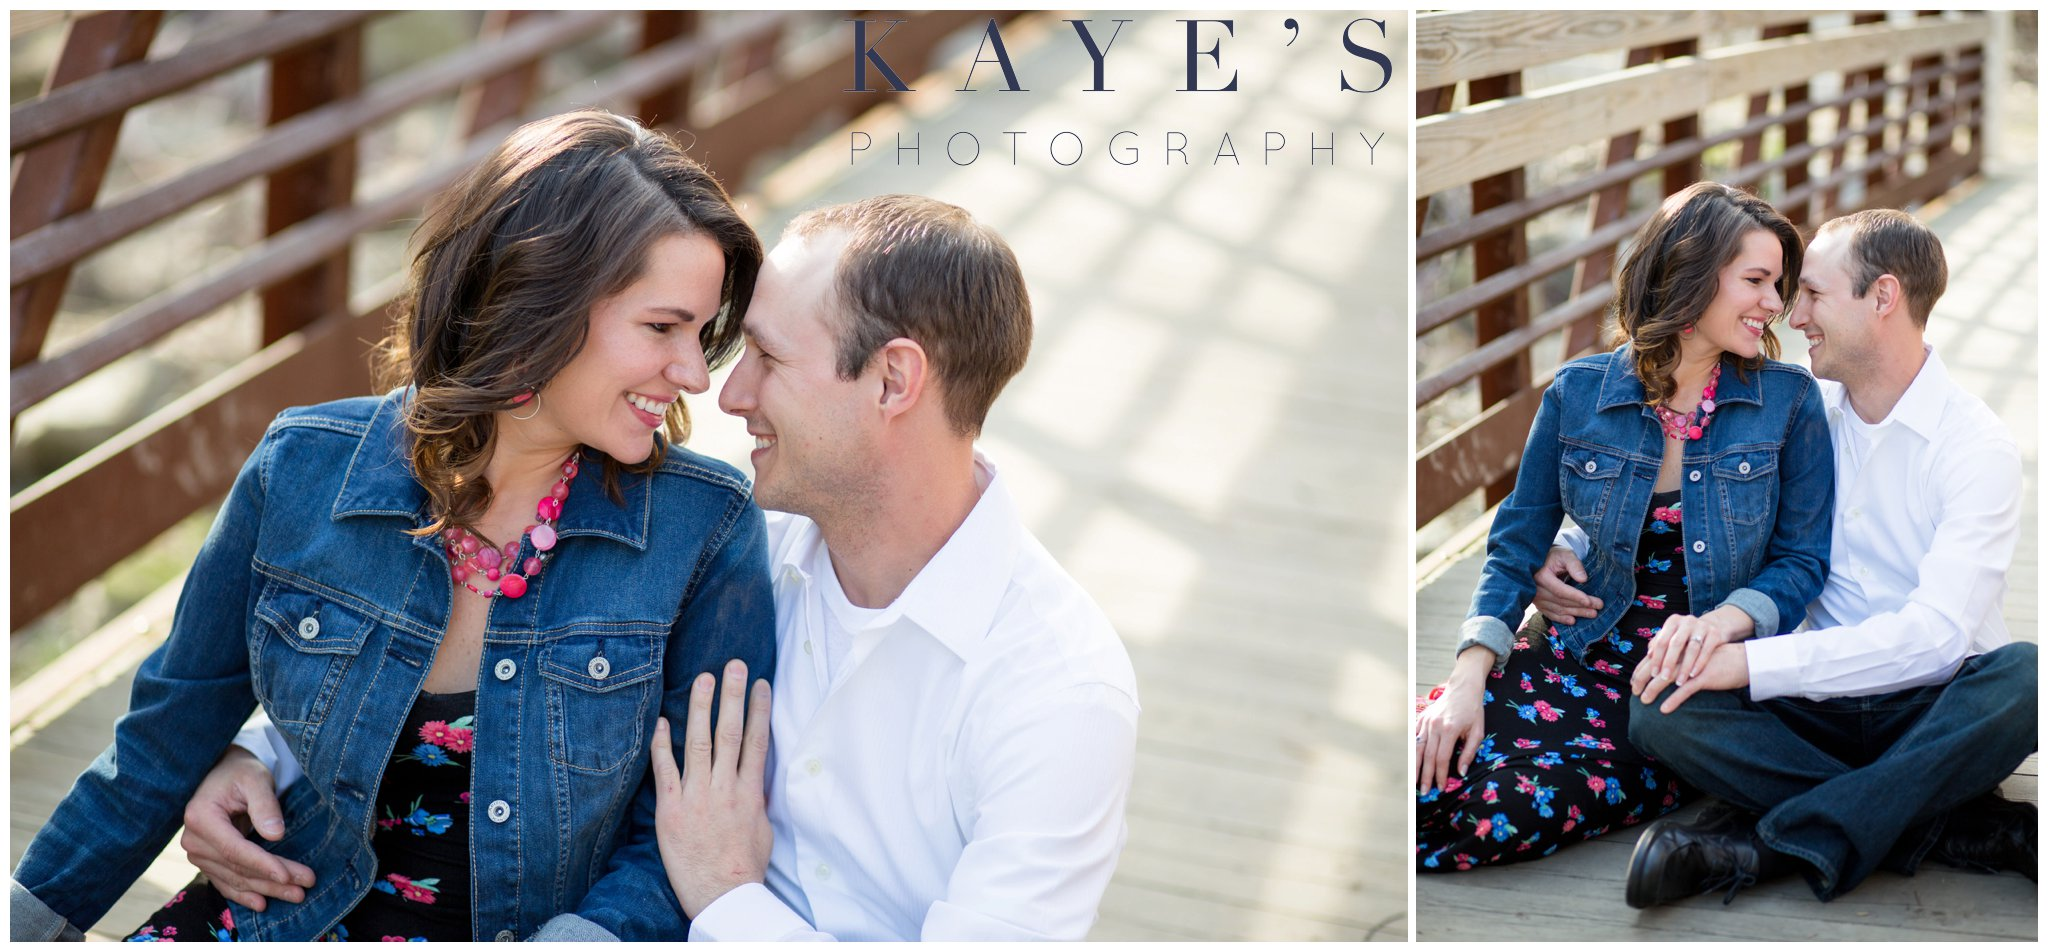 Holly Michigan wedding photography, holly michigan wedding photographer, holly michigan engagement photography, engagement photo, outdoor engagement portraits, portrait photographer, marriage photography, engagement portraits,couple hugging, couple on bridge, couple in love